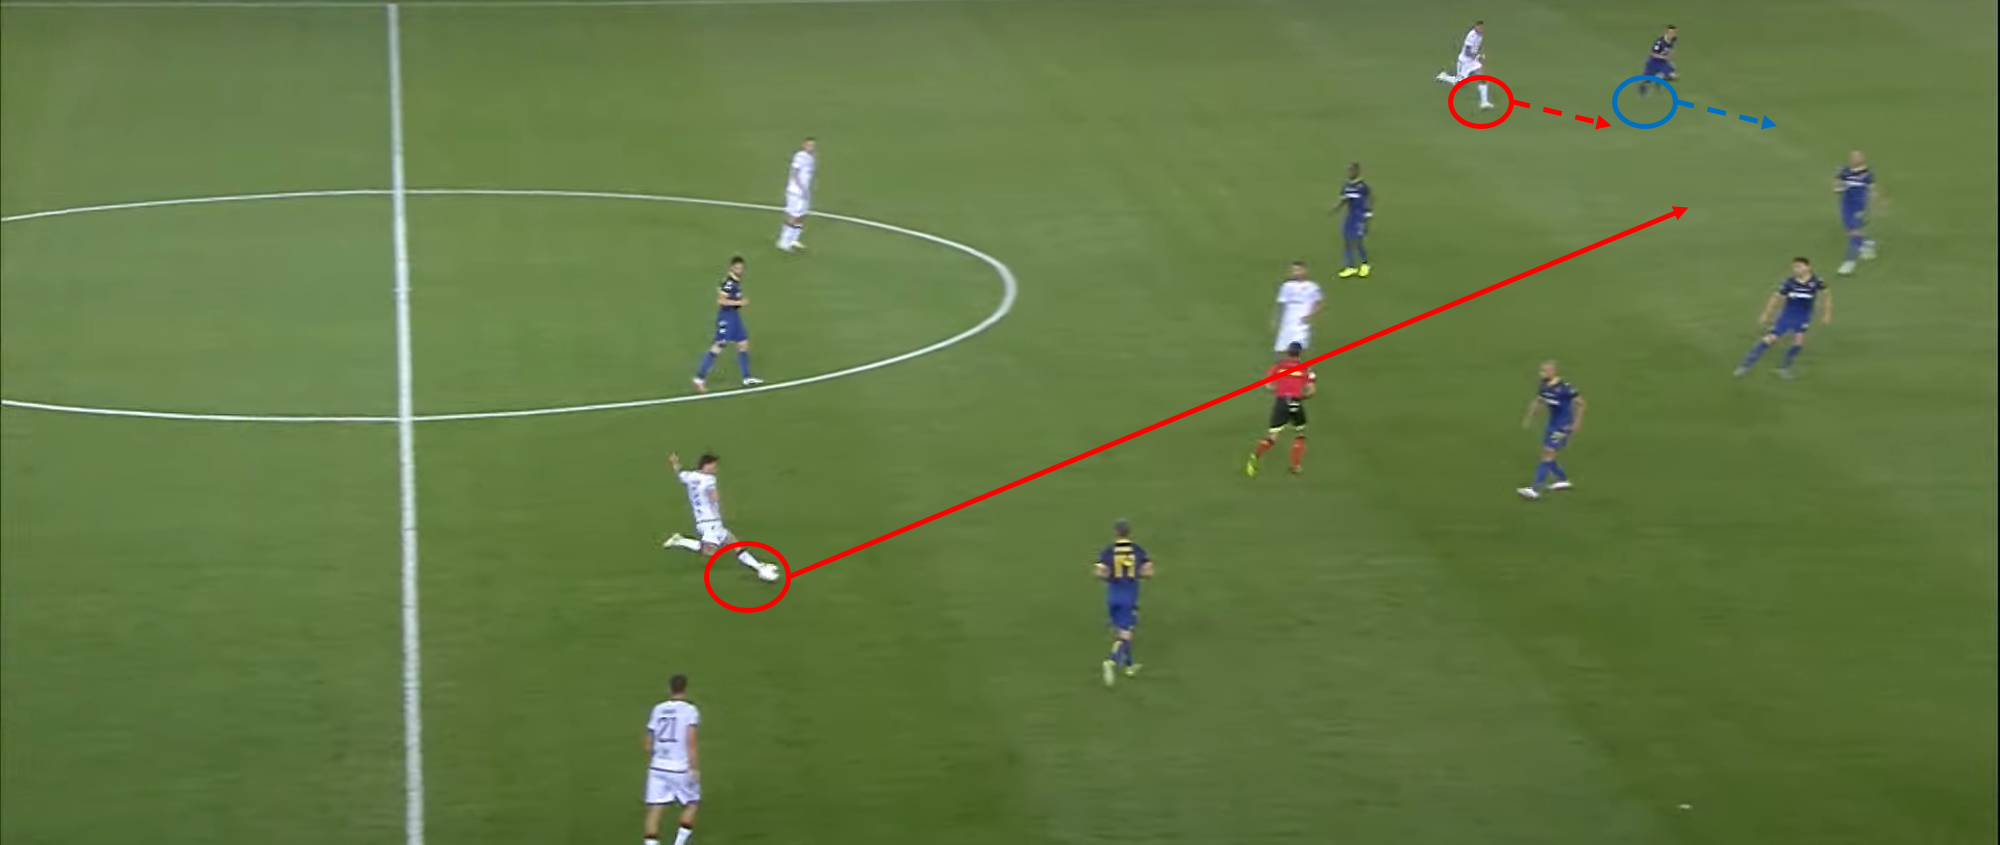 Serie A 2019/20: Hellas Verona vs Cagliari – tactical analysis - tactics